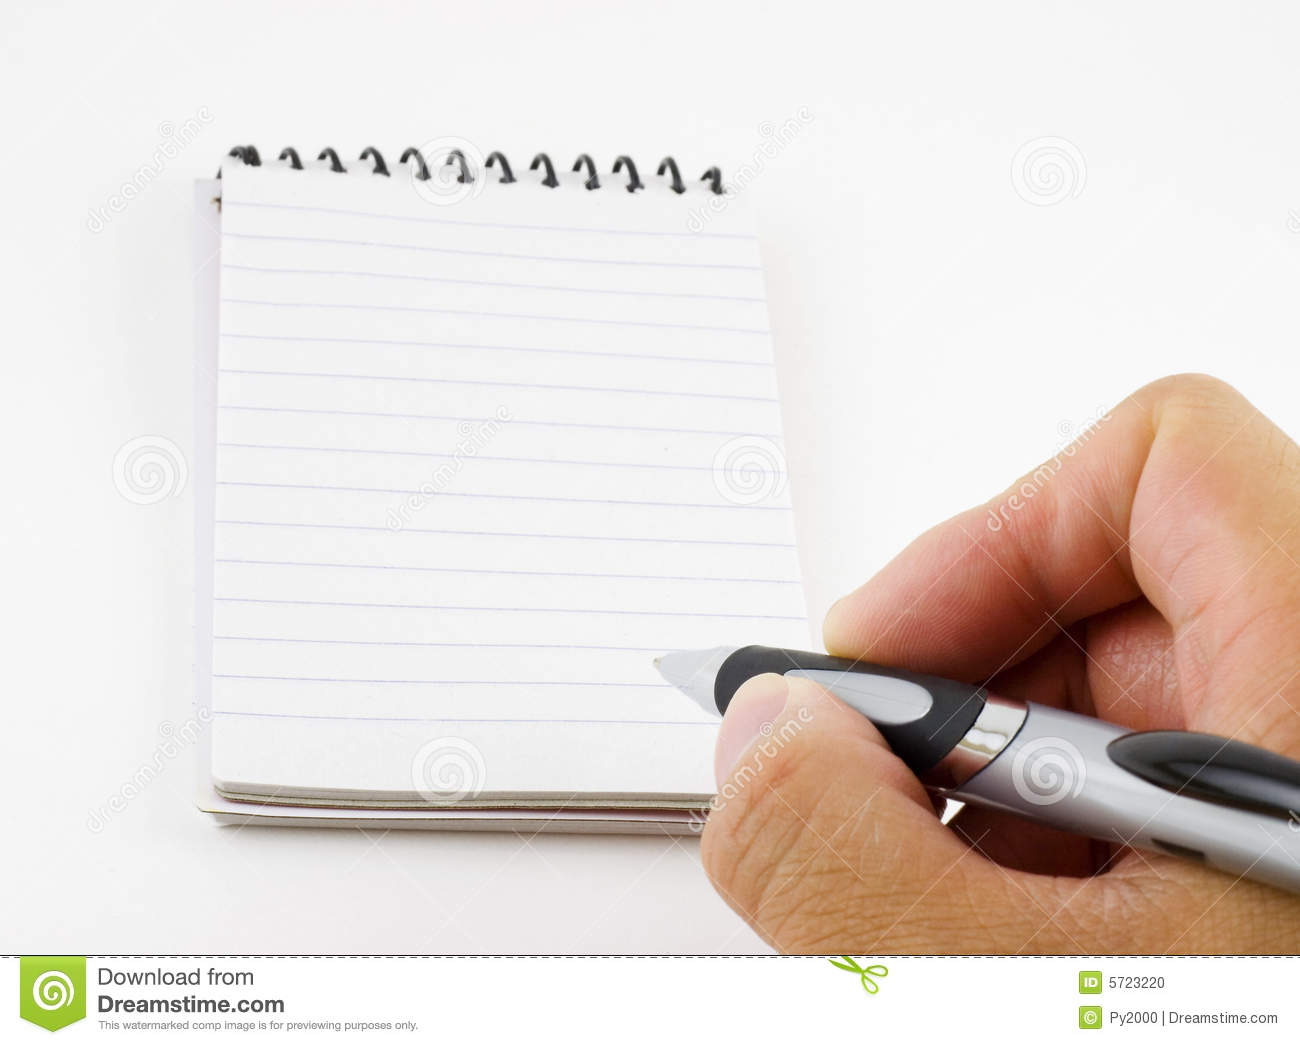 Person writing a note stock photo. Image of ruled, blank ...